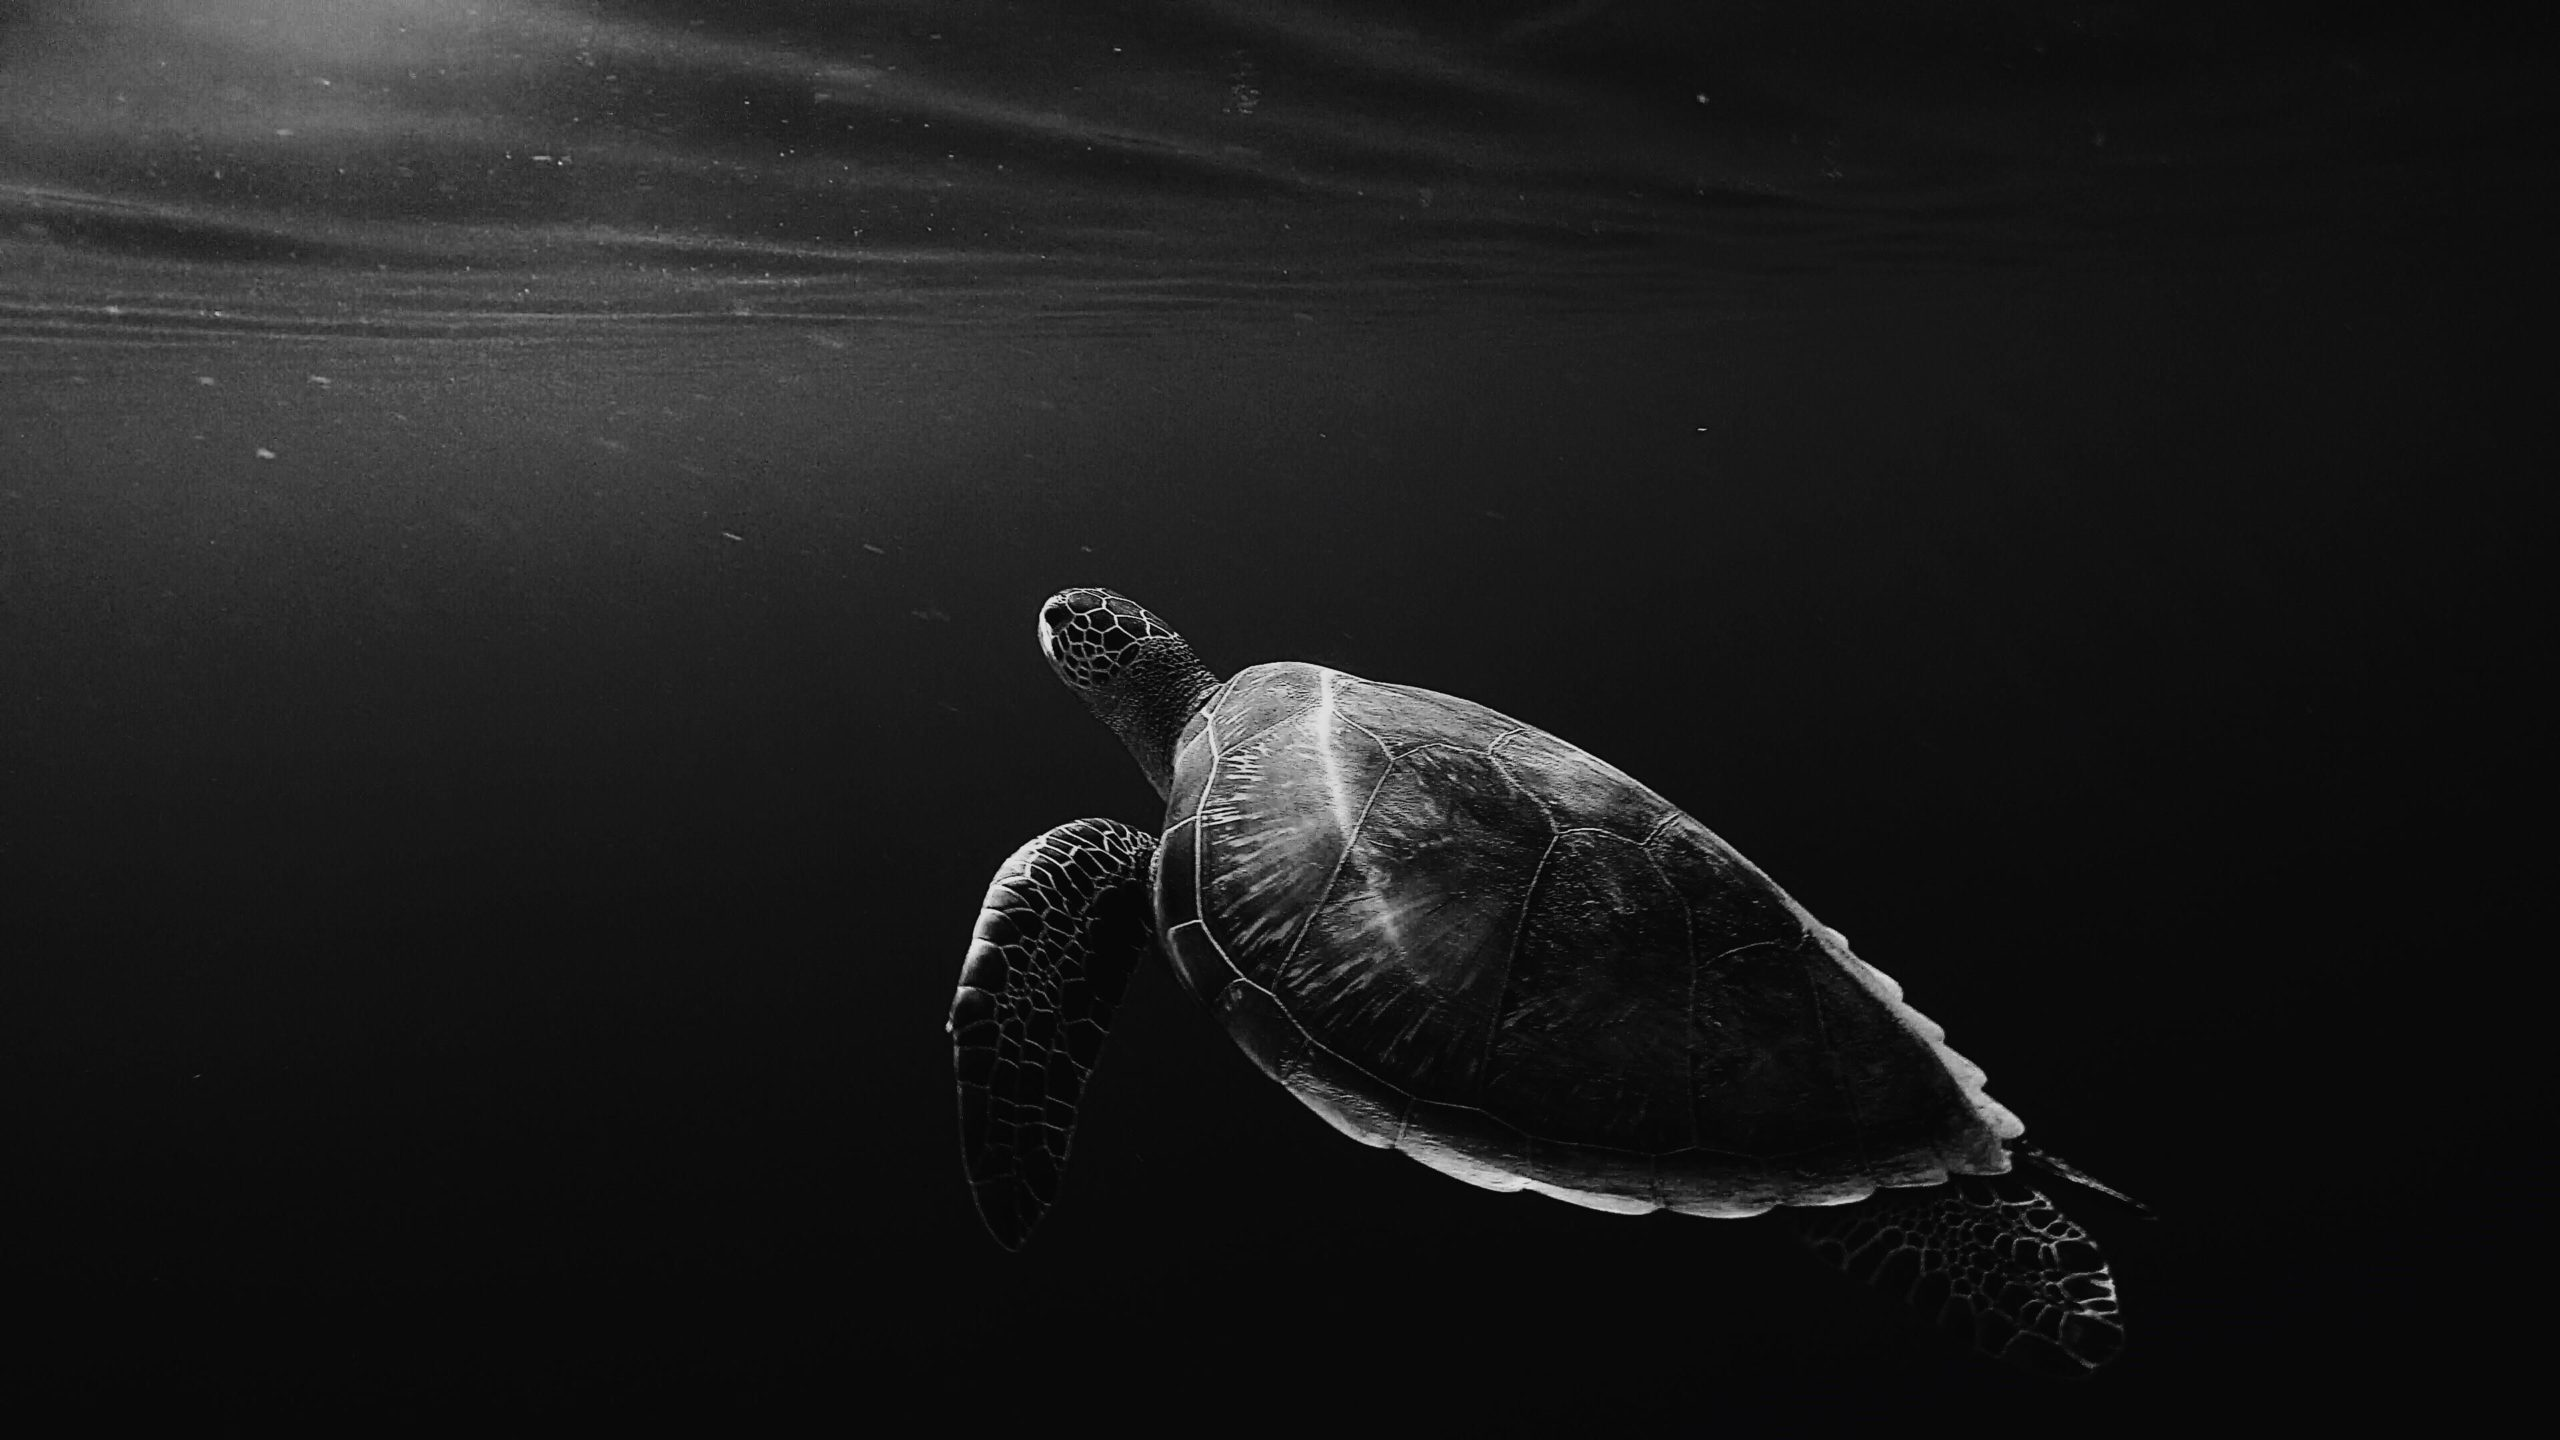 turtle images free